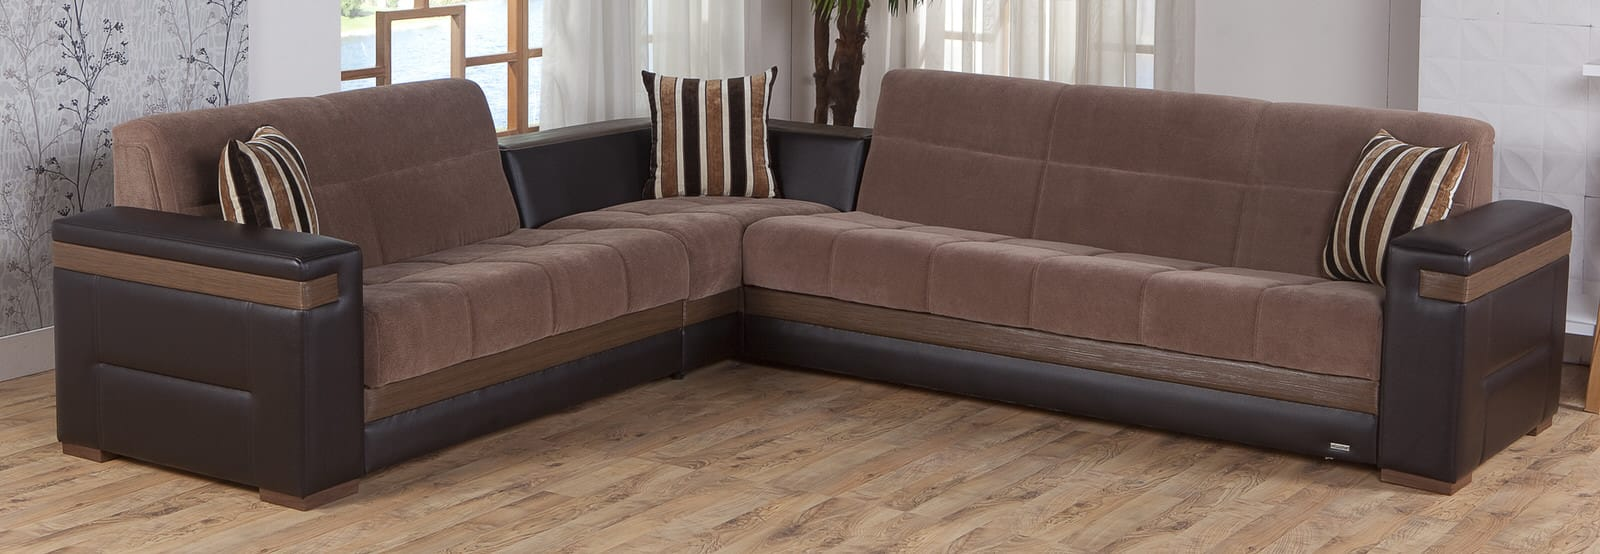 Moon Troya Brown Sectional Sofa by Istikbal Furniture